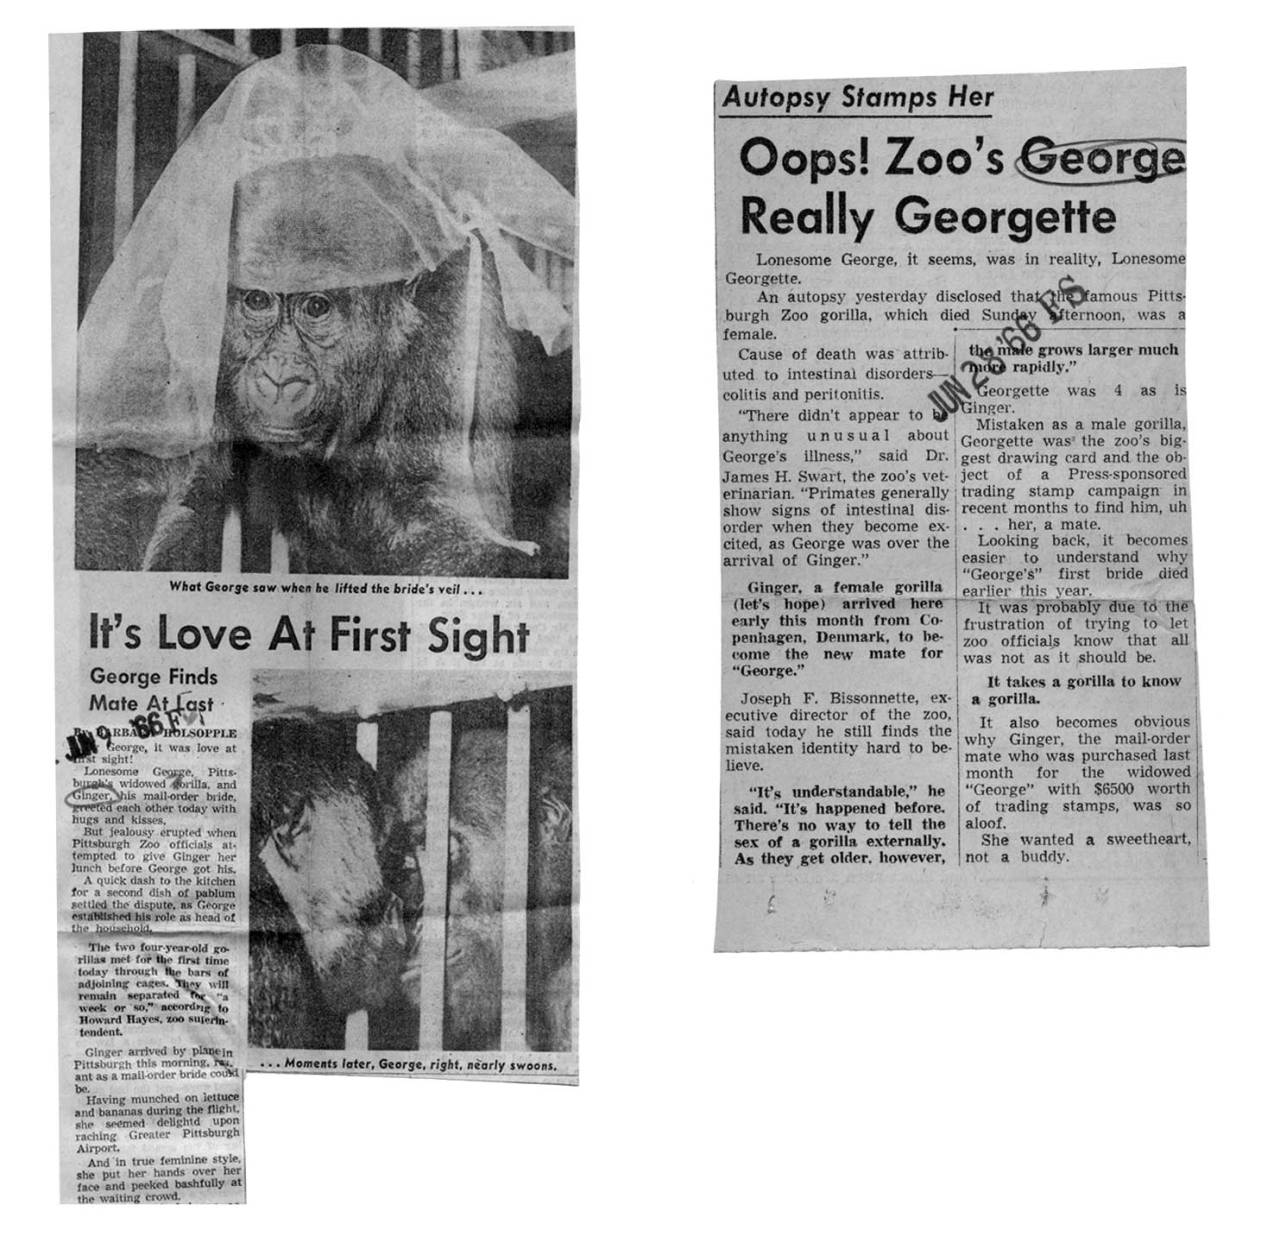 Some of the newspaper coverage of the romance.